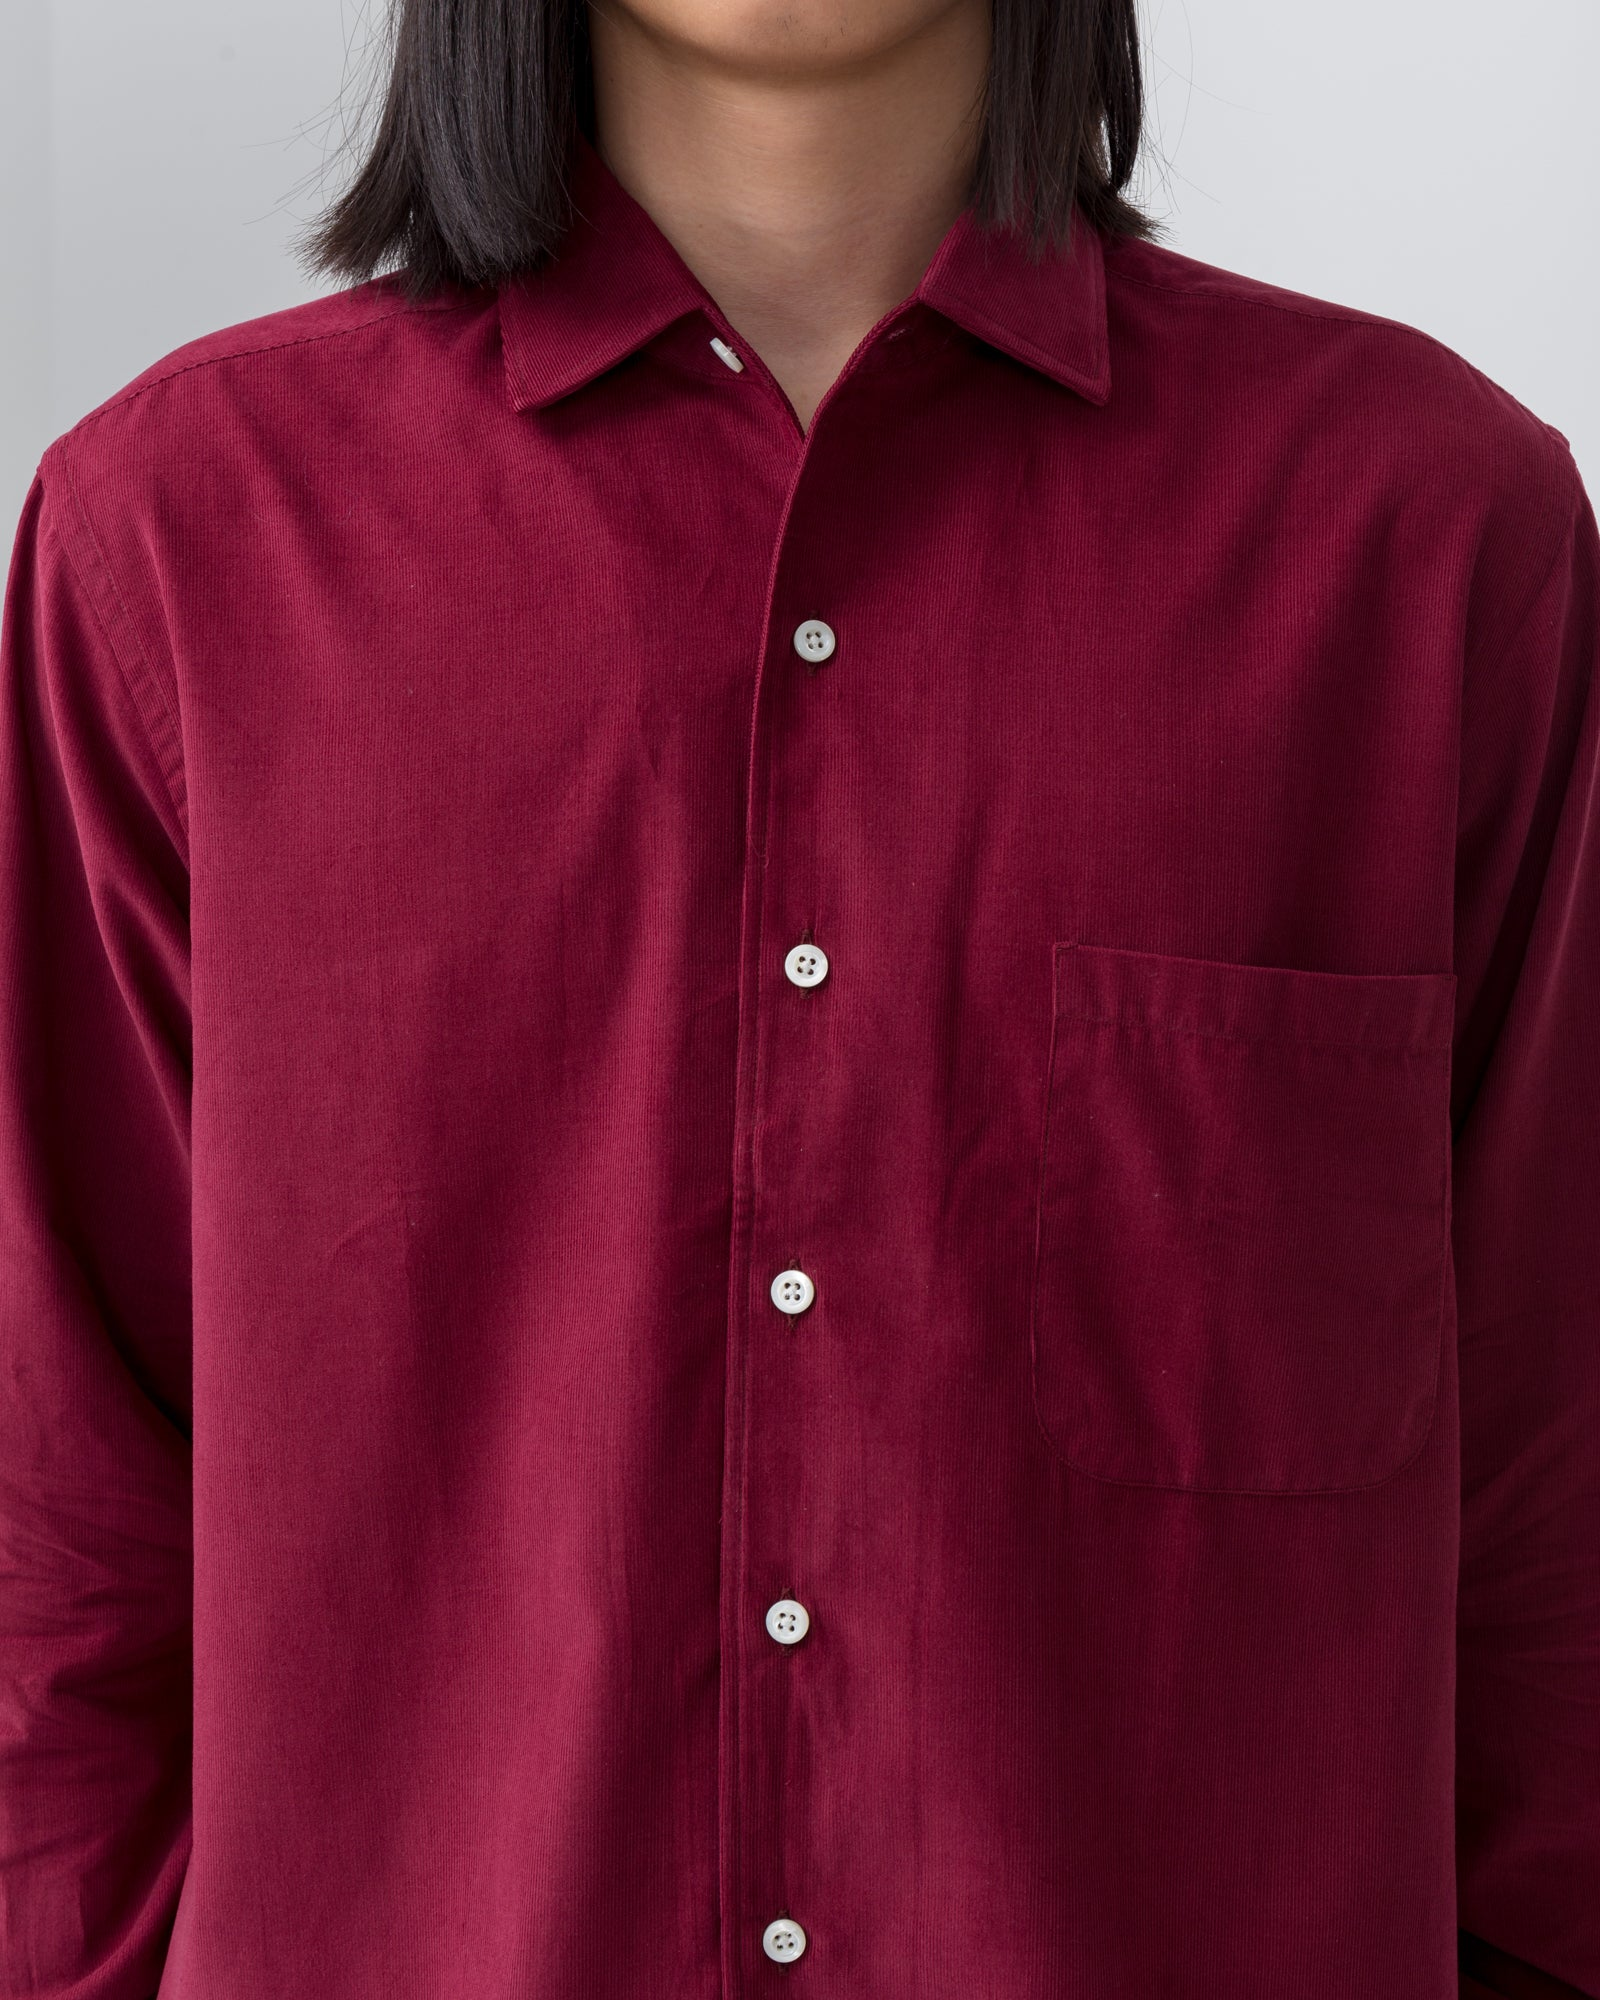 Replica Shirt in Crimson Micro Cord